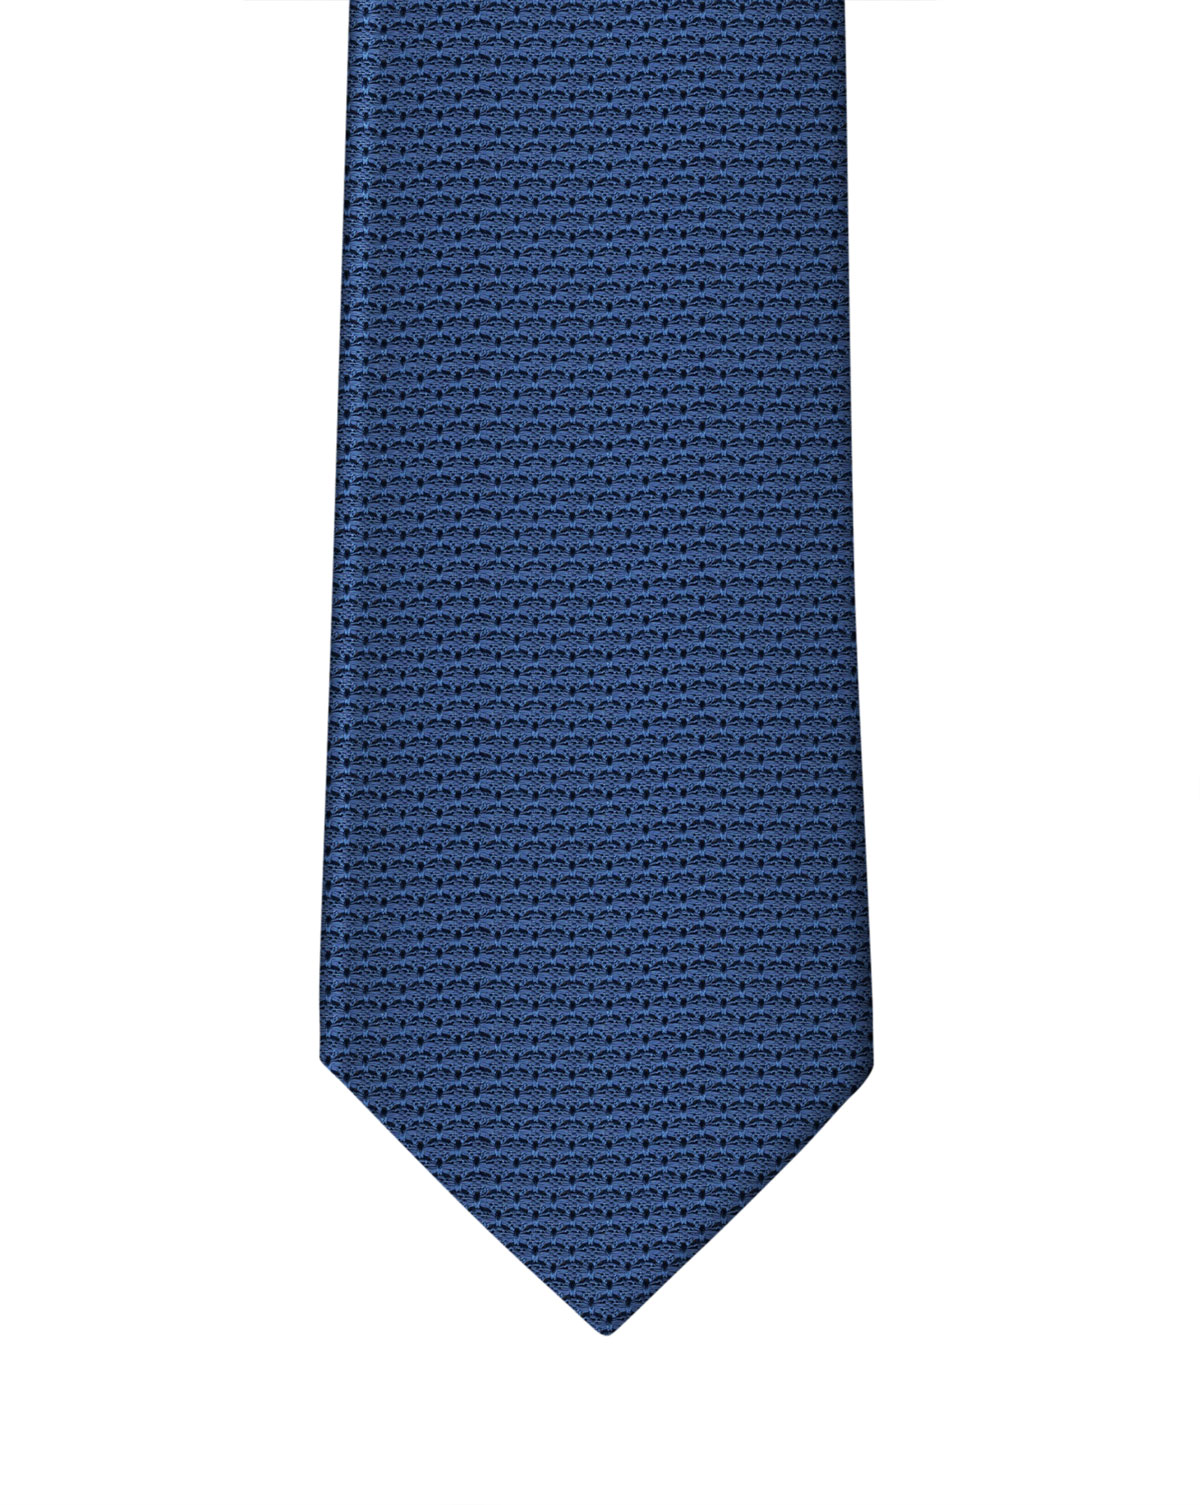 Royal Blue Grenadine Necktie